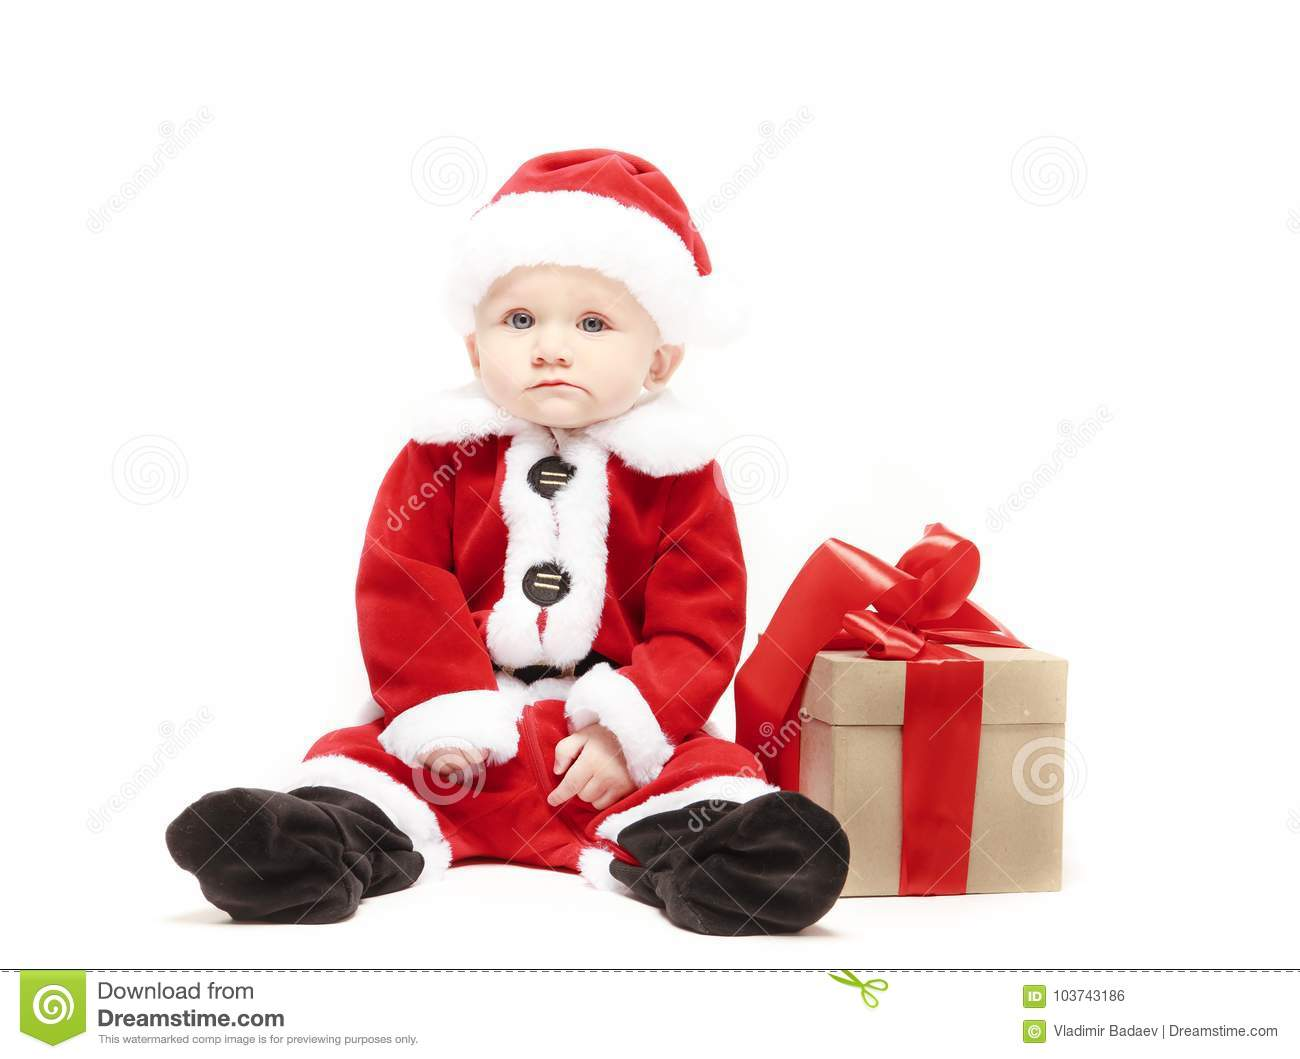 de5b1e276a18 Santa Claus baby in red christmas clothes with gift box isolated on white  background